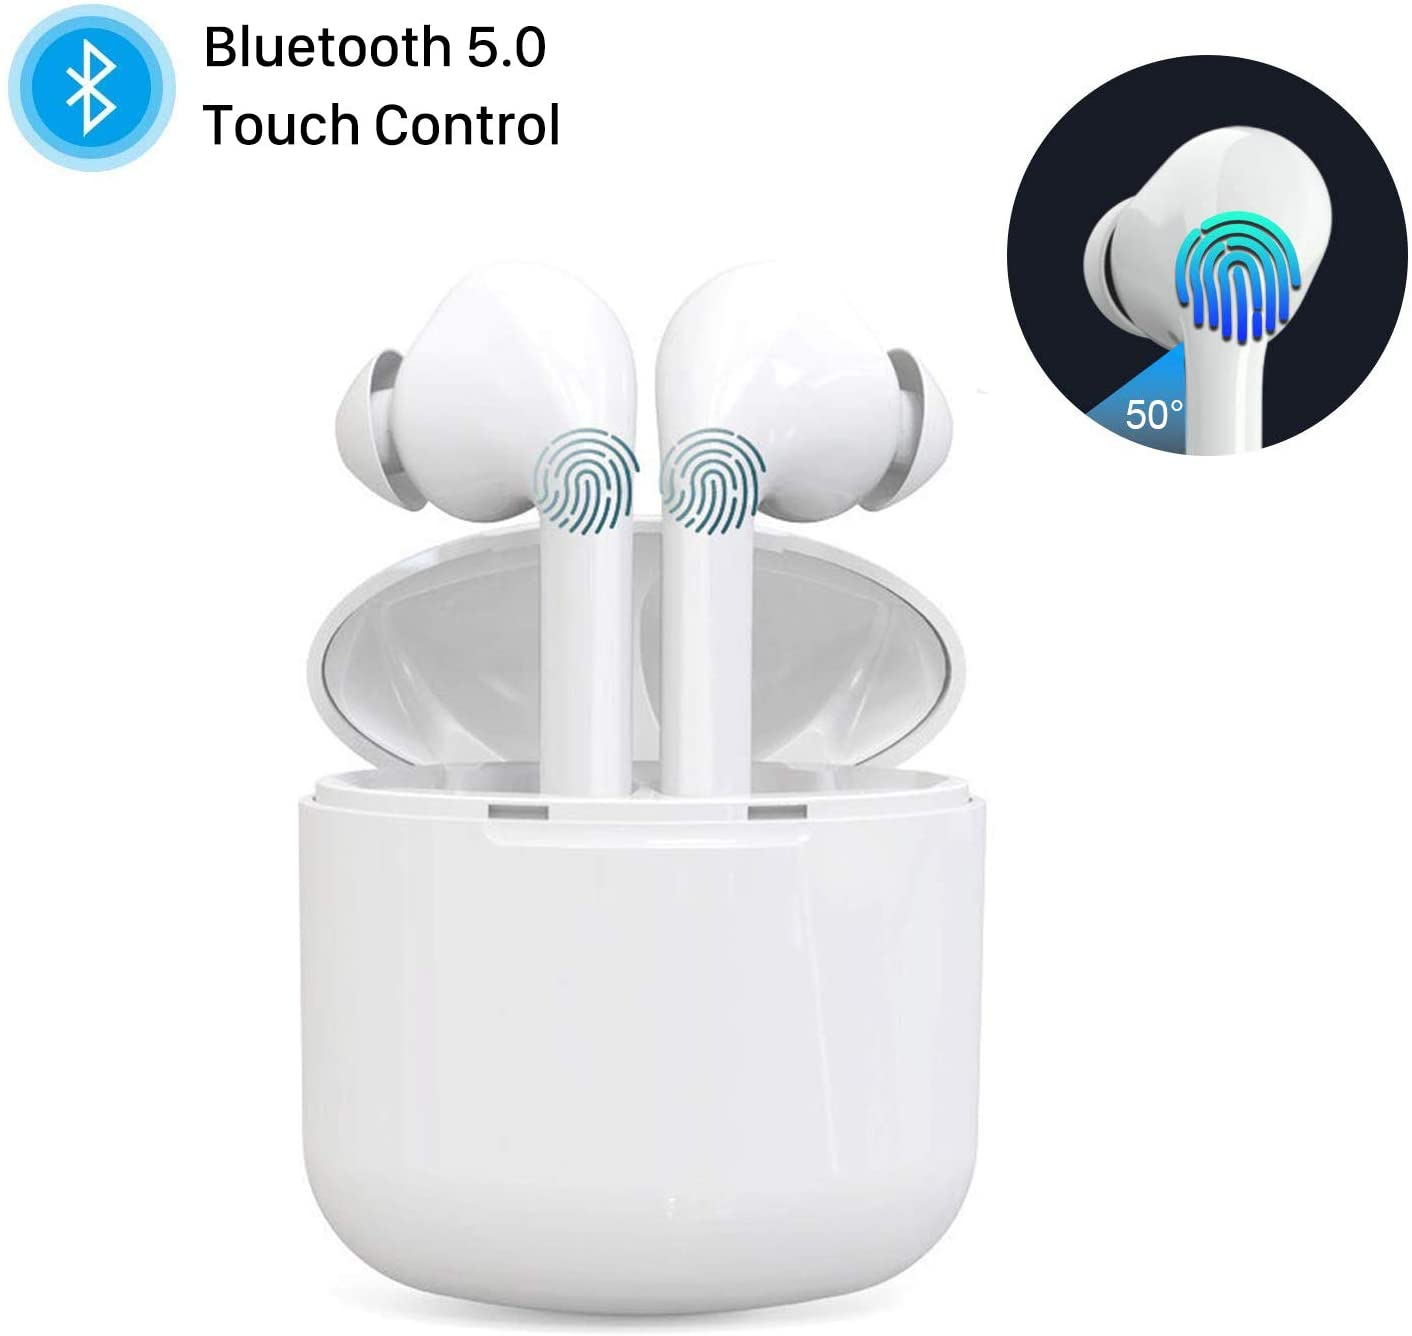 Wireless Earbuds, Bluetooth 5.0 True Wireless Earphones Smart Touch Control with Noise Cancellation, 30h Play time in-Ear Wireless Headphones Built-in Mic Sweatproof Headsets for Work/Running/Travel